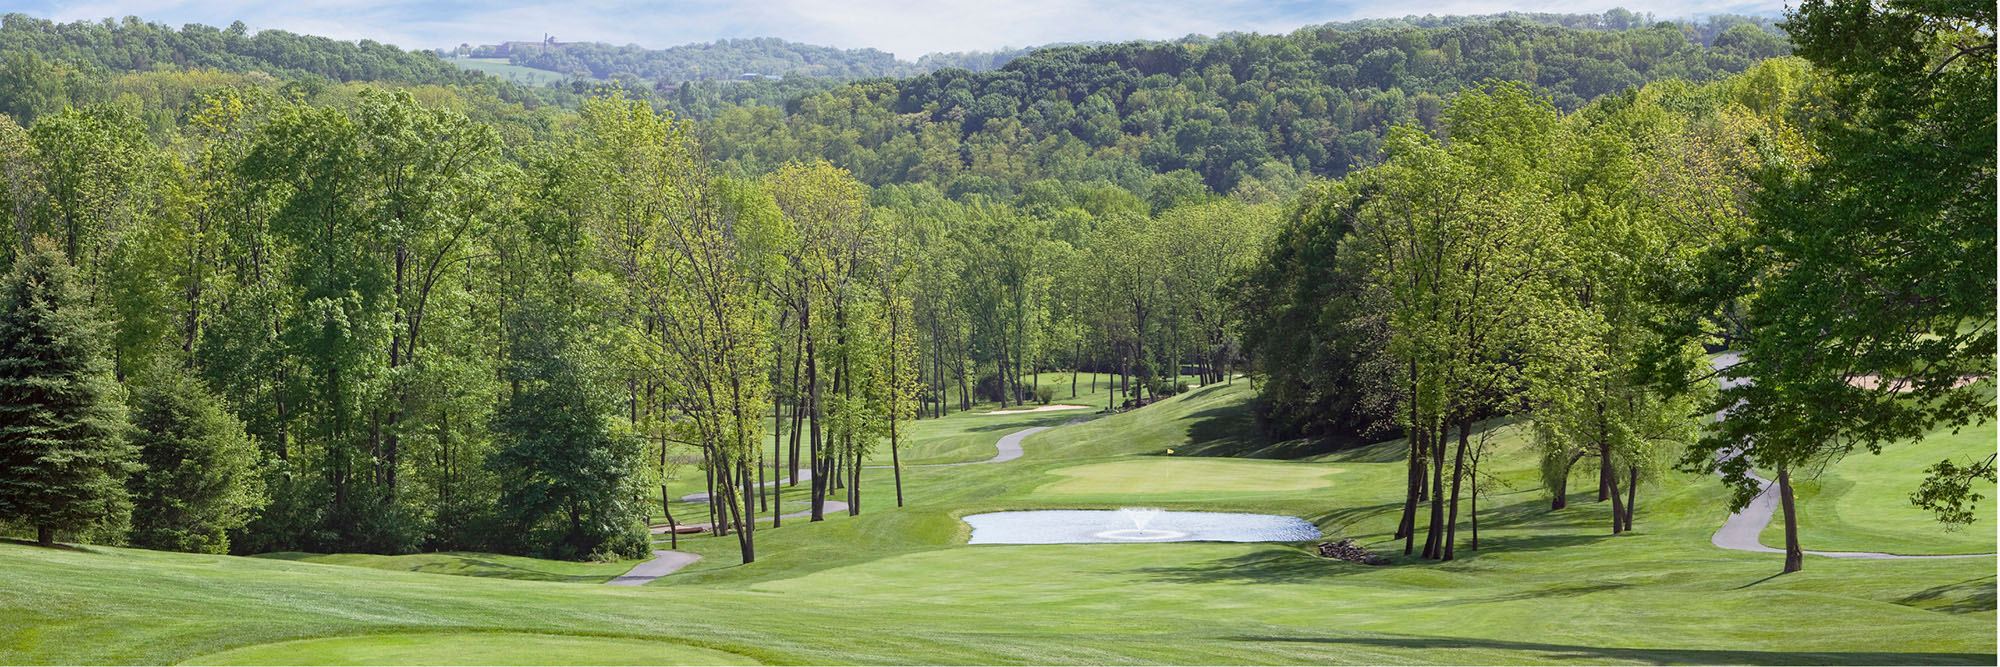 Golf Course Image - Woodstone Country Club No. 1